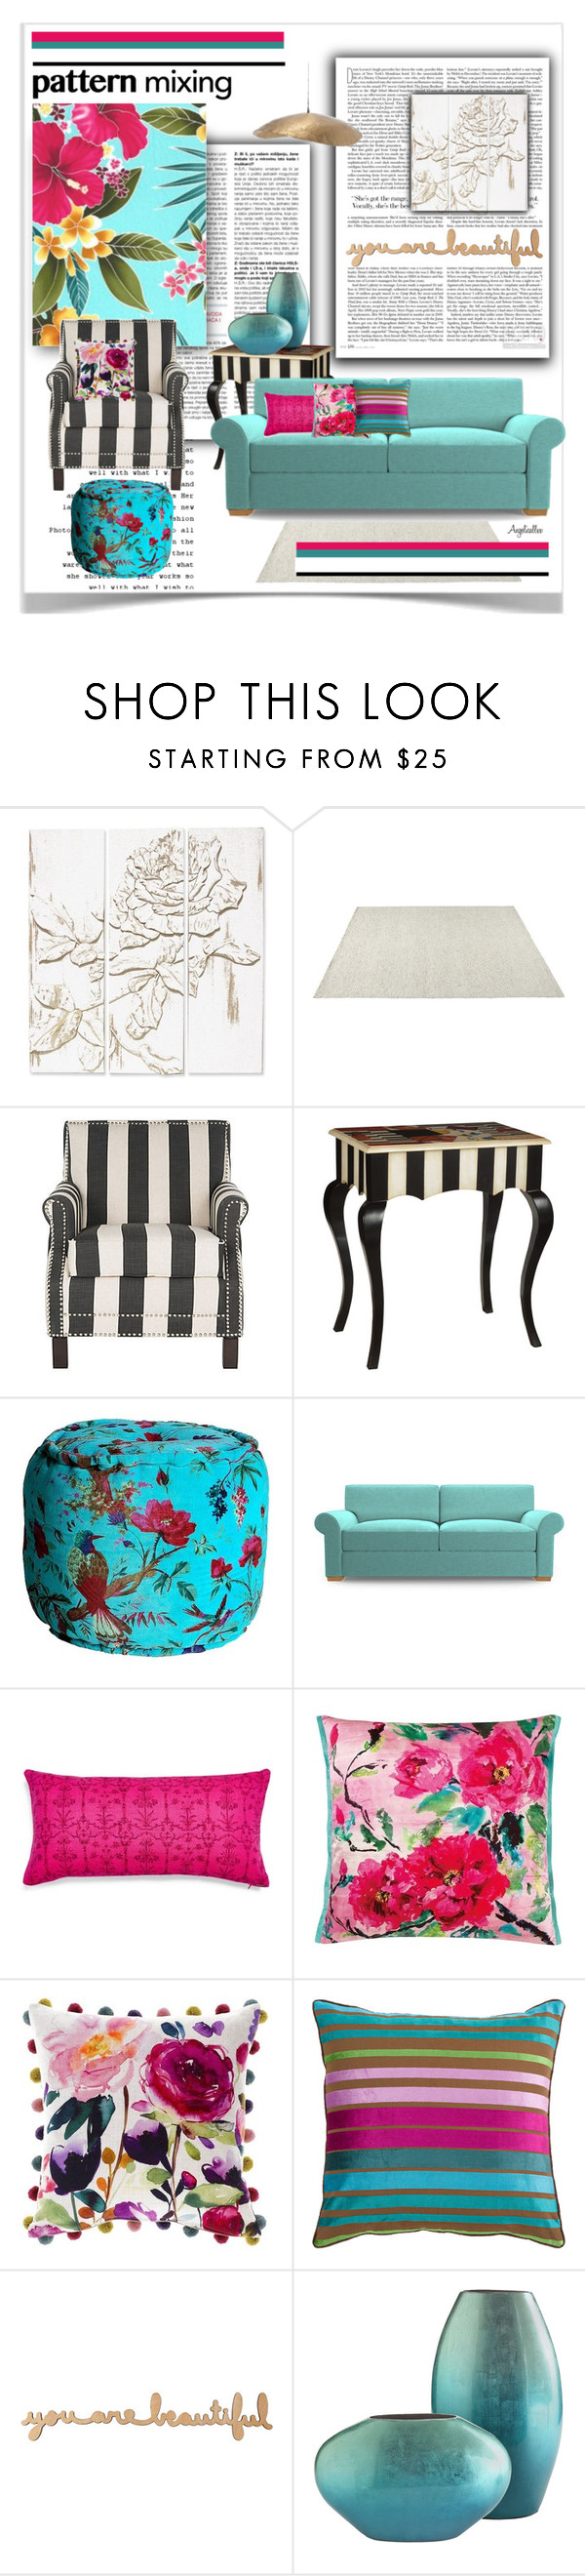 """""""Flowers and Stripes"""" by angelicallxx ❤ liked on Polyvore featuring interior, interiors, interior design, home, home decor, interior decorating, Palecek, CO, Joybird and abcDNA"""